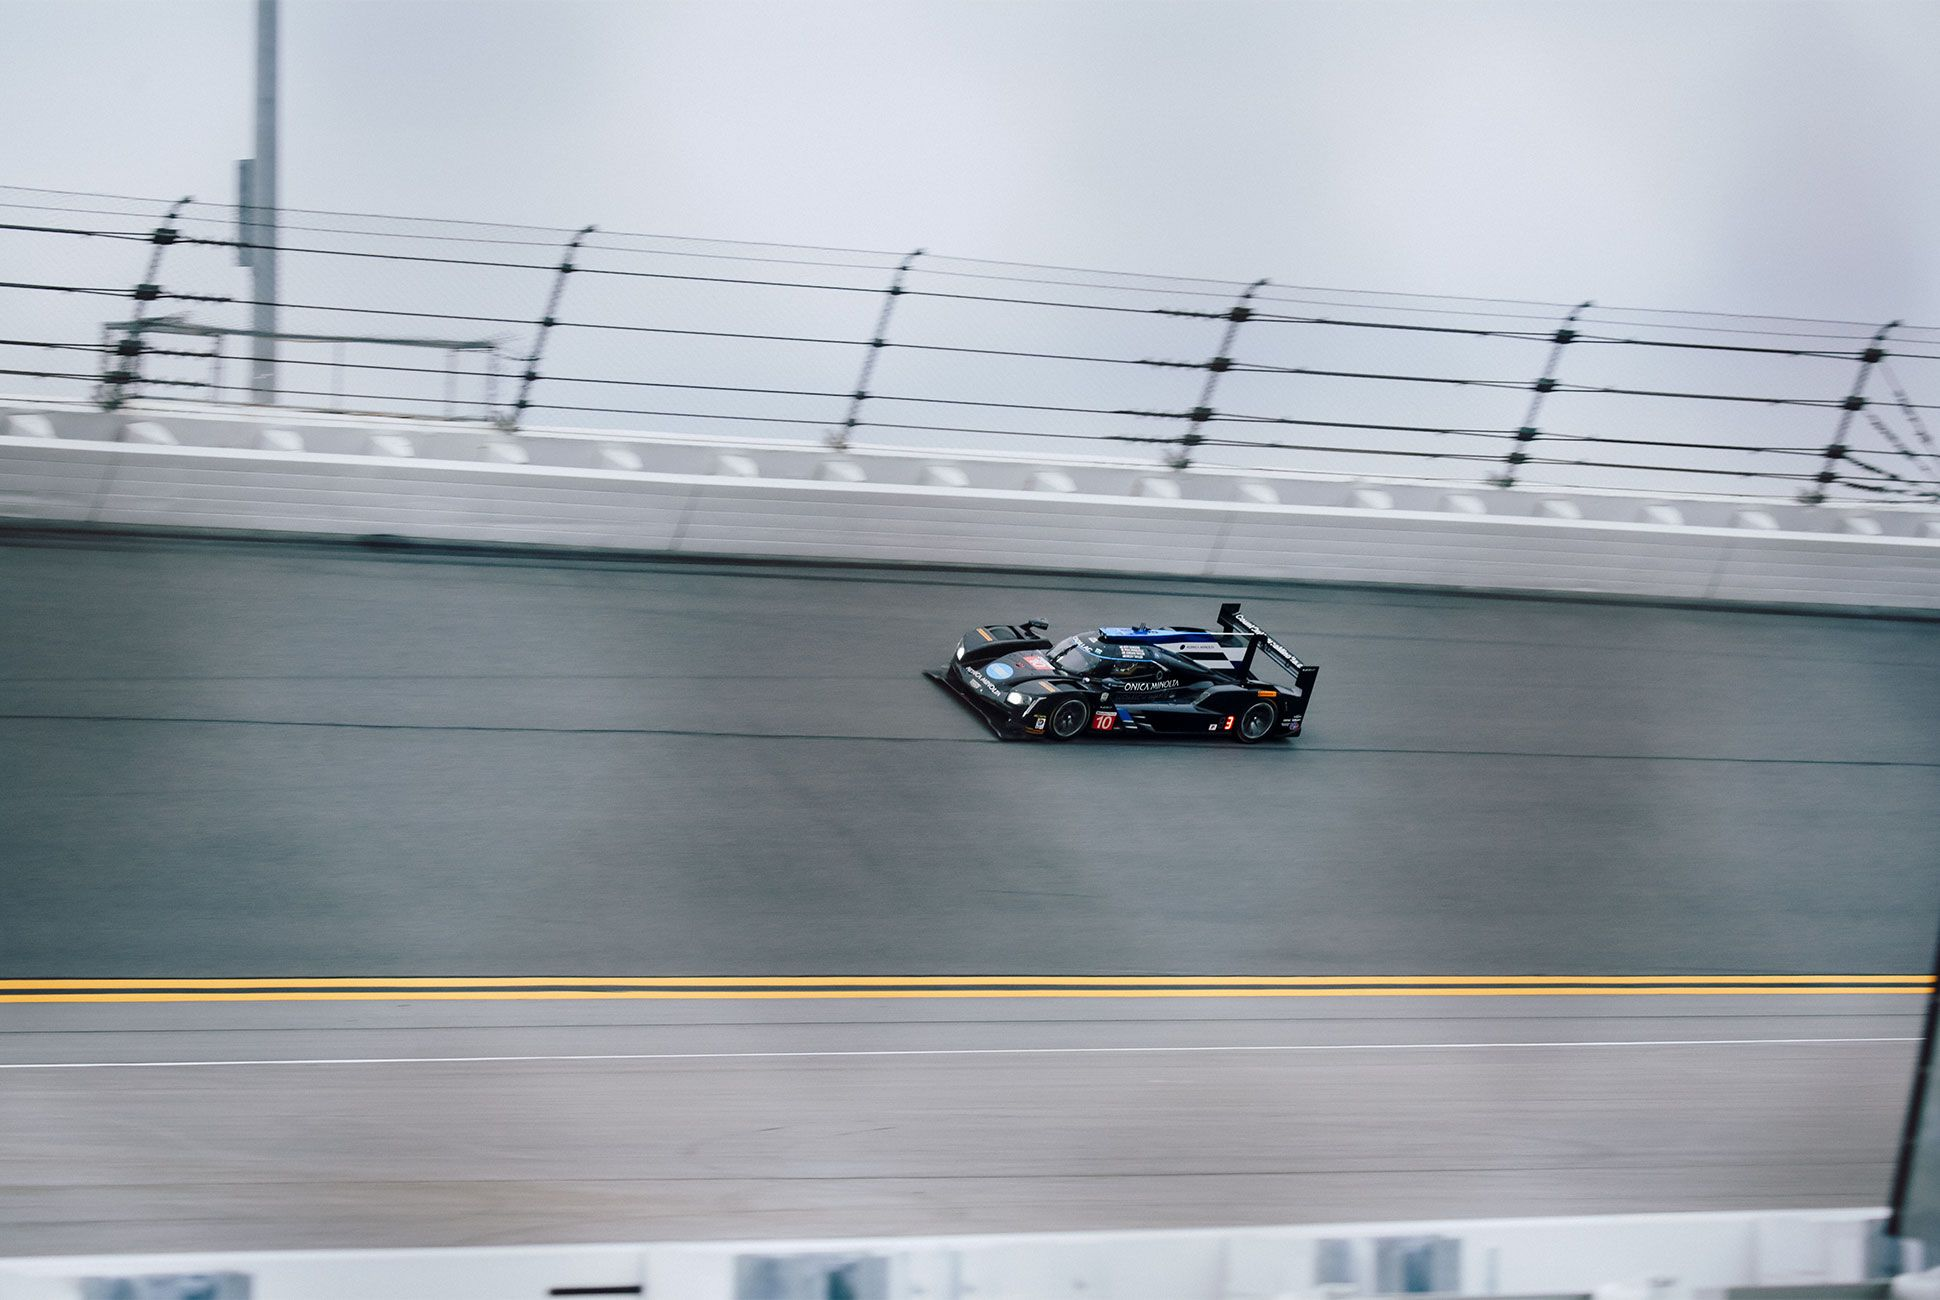 Daytona 24 Gear Patrol Slide 10